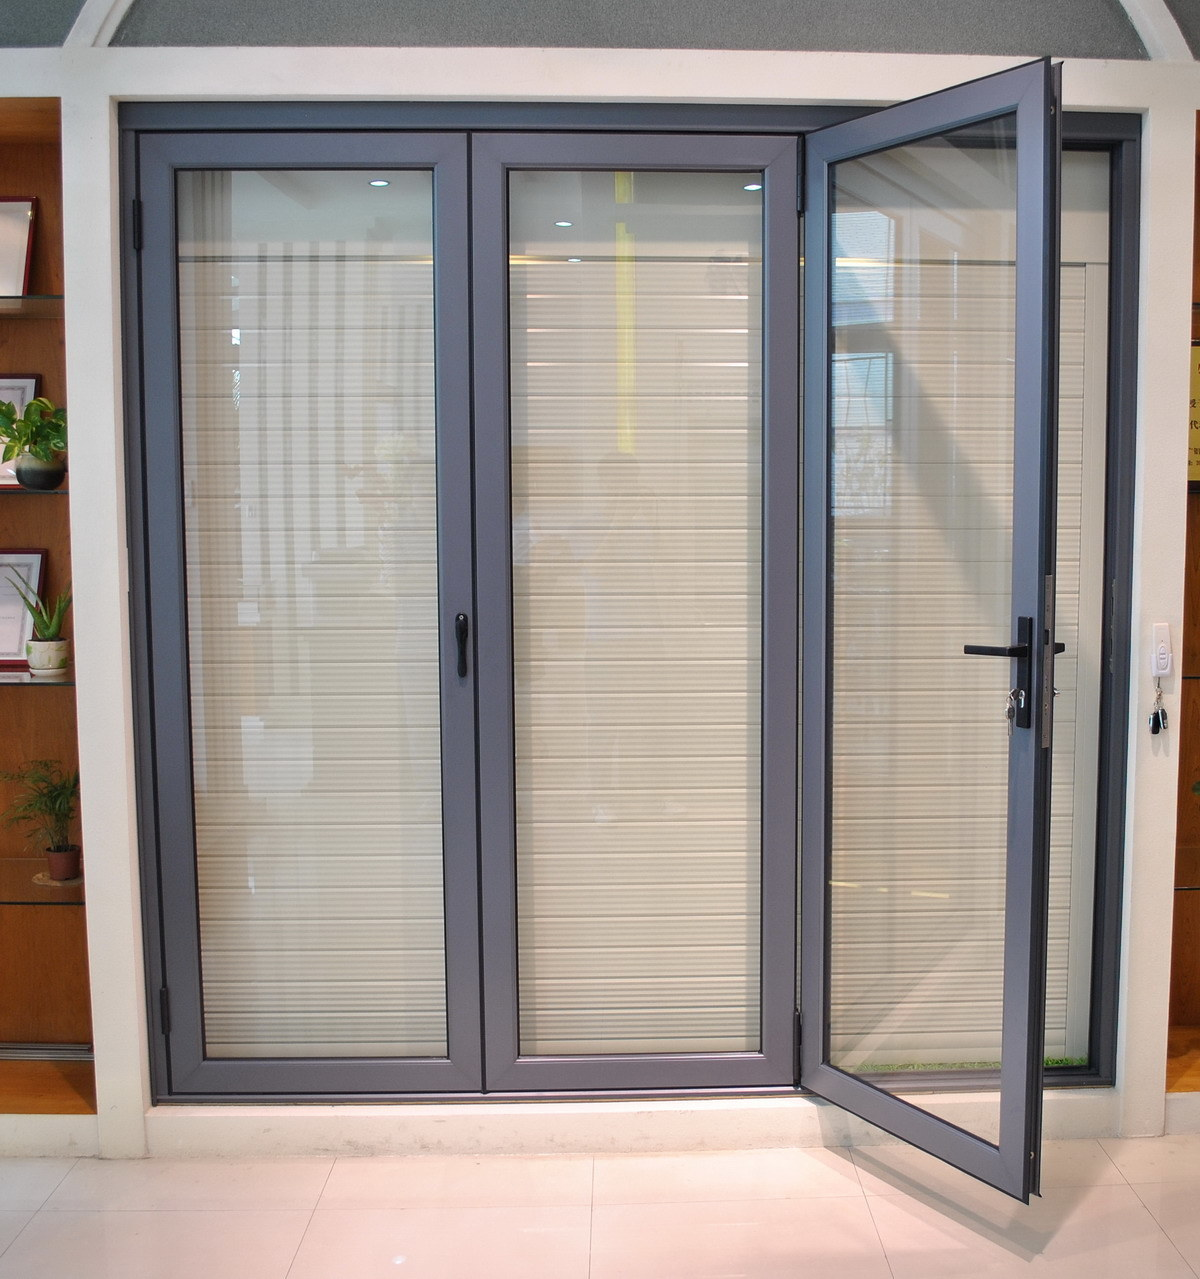 Sliding Doors Full Structural Load And The Ultraframe Bi Fold Doors